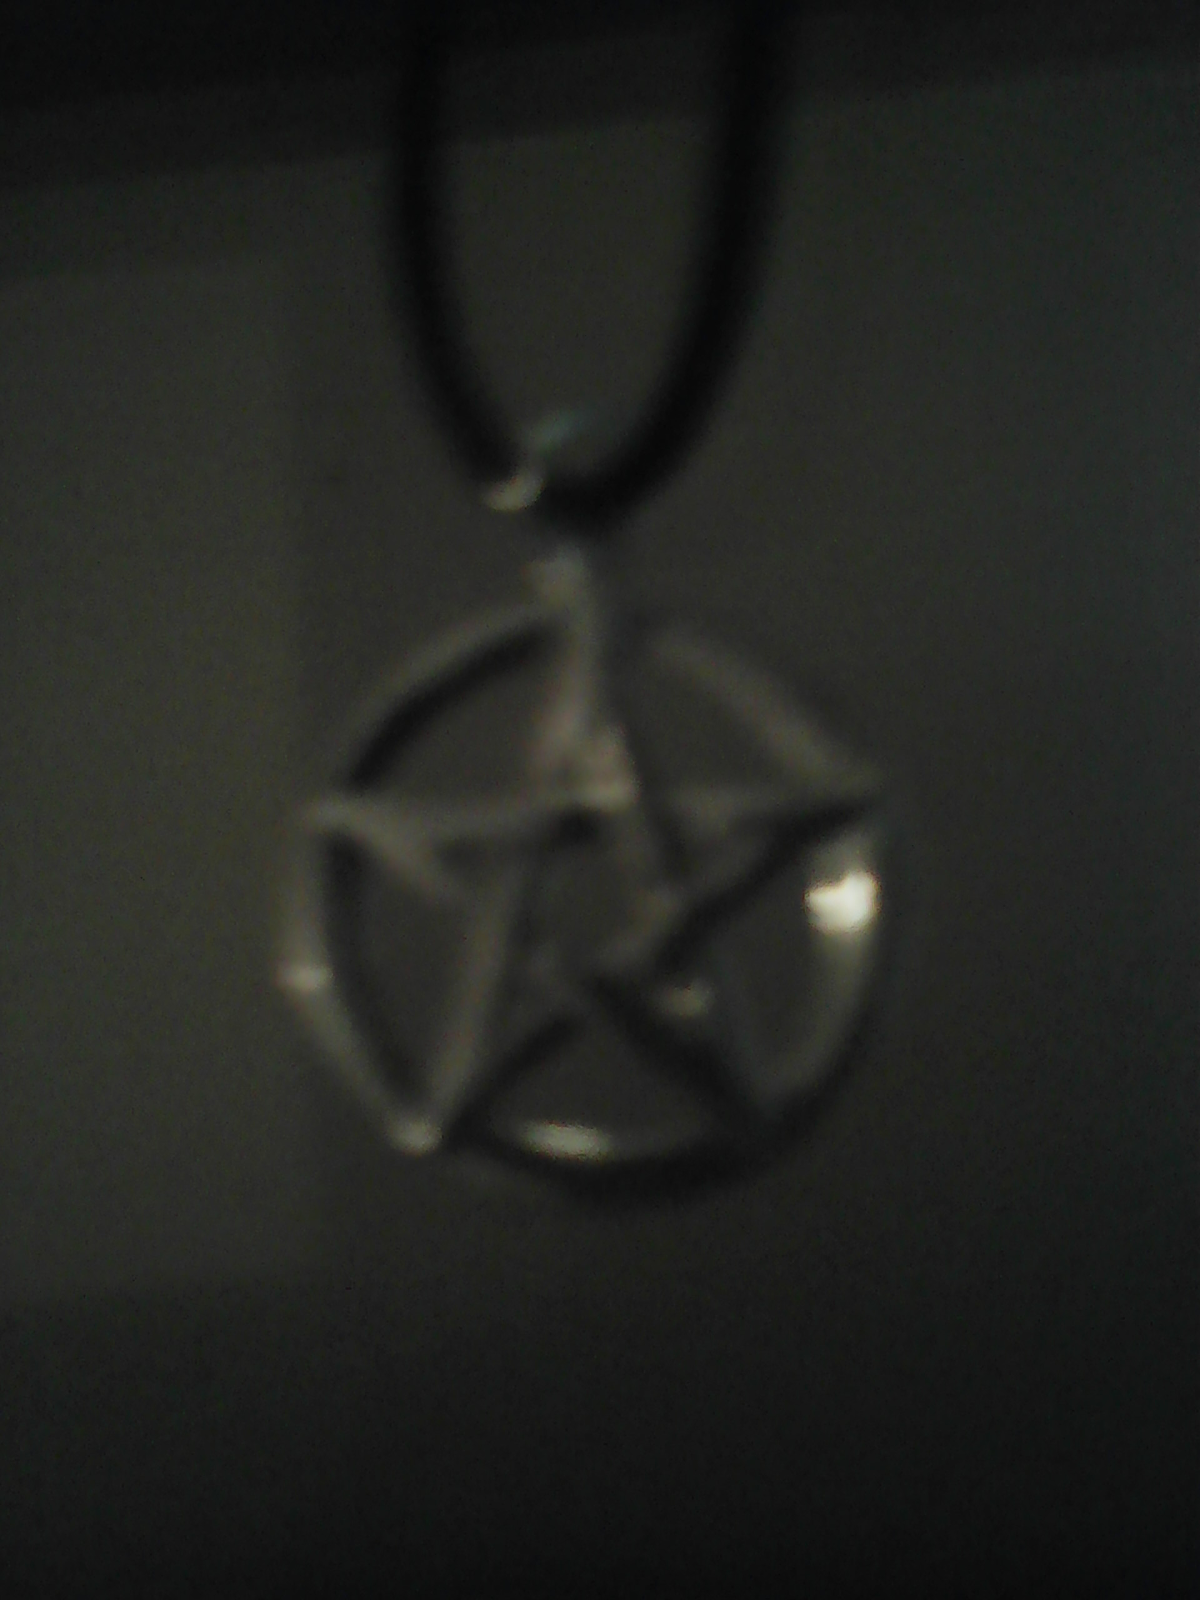 A witches' pentacle.